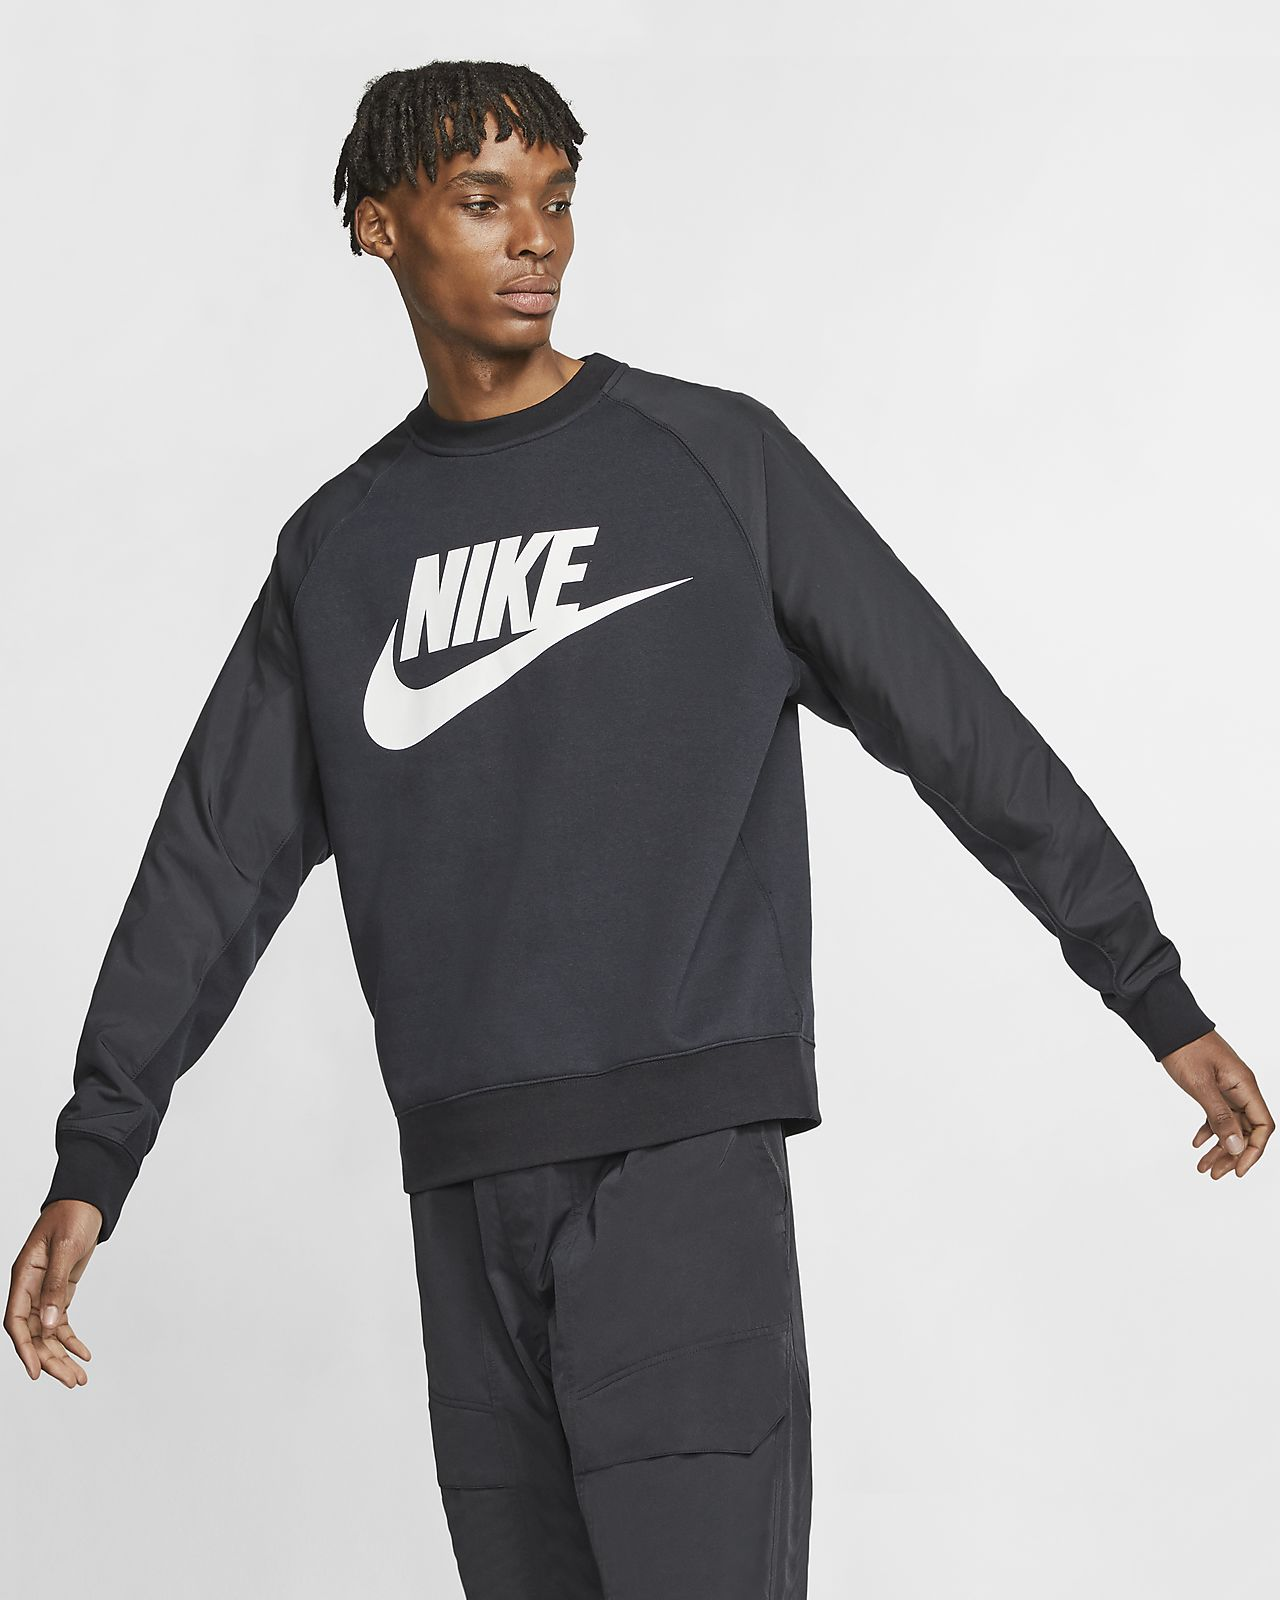 Nike Sportswear Men's Graphic Crew